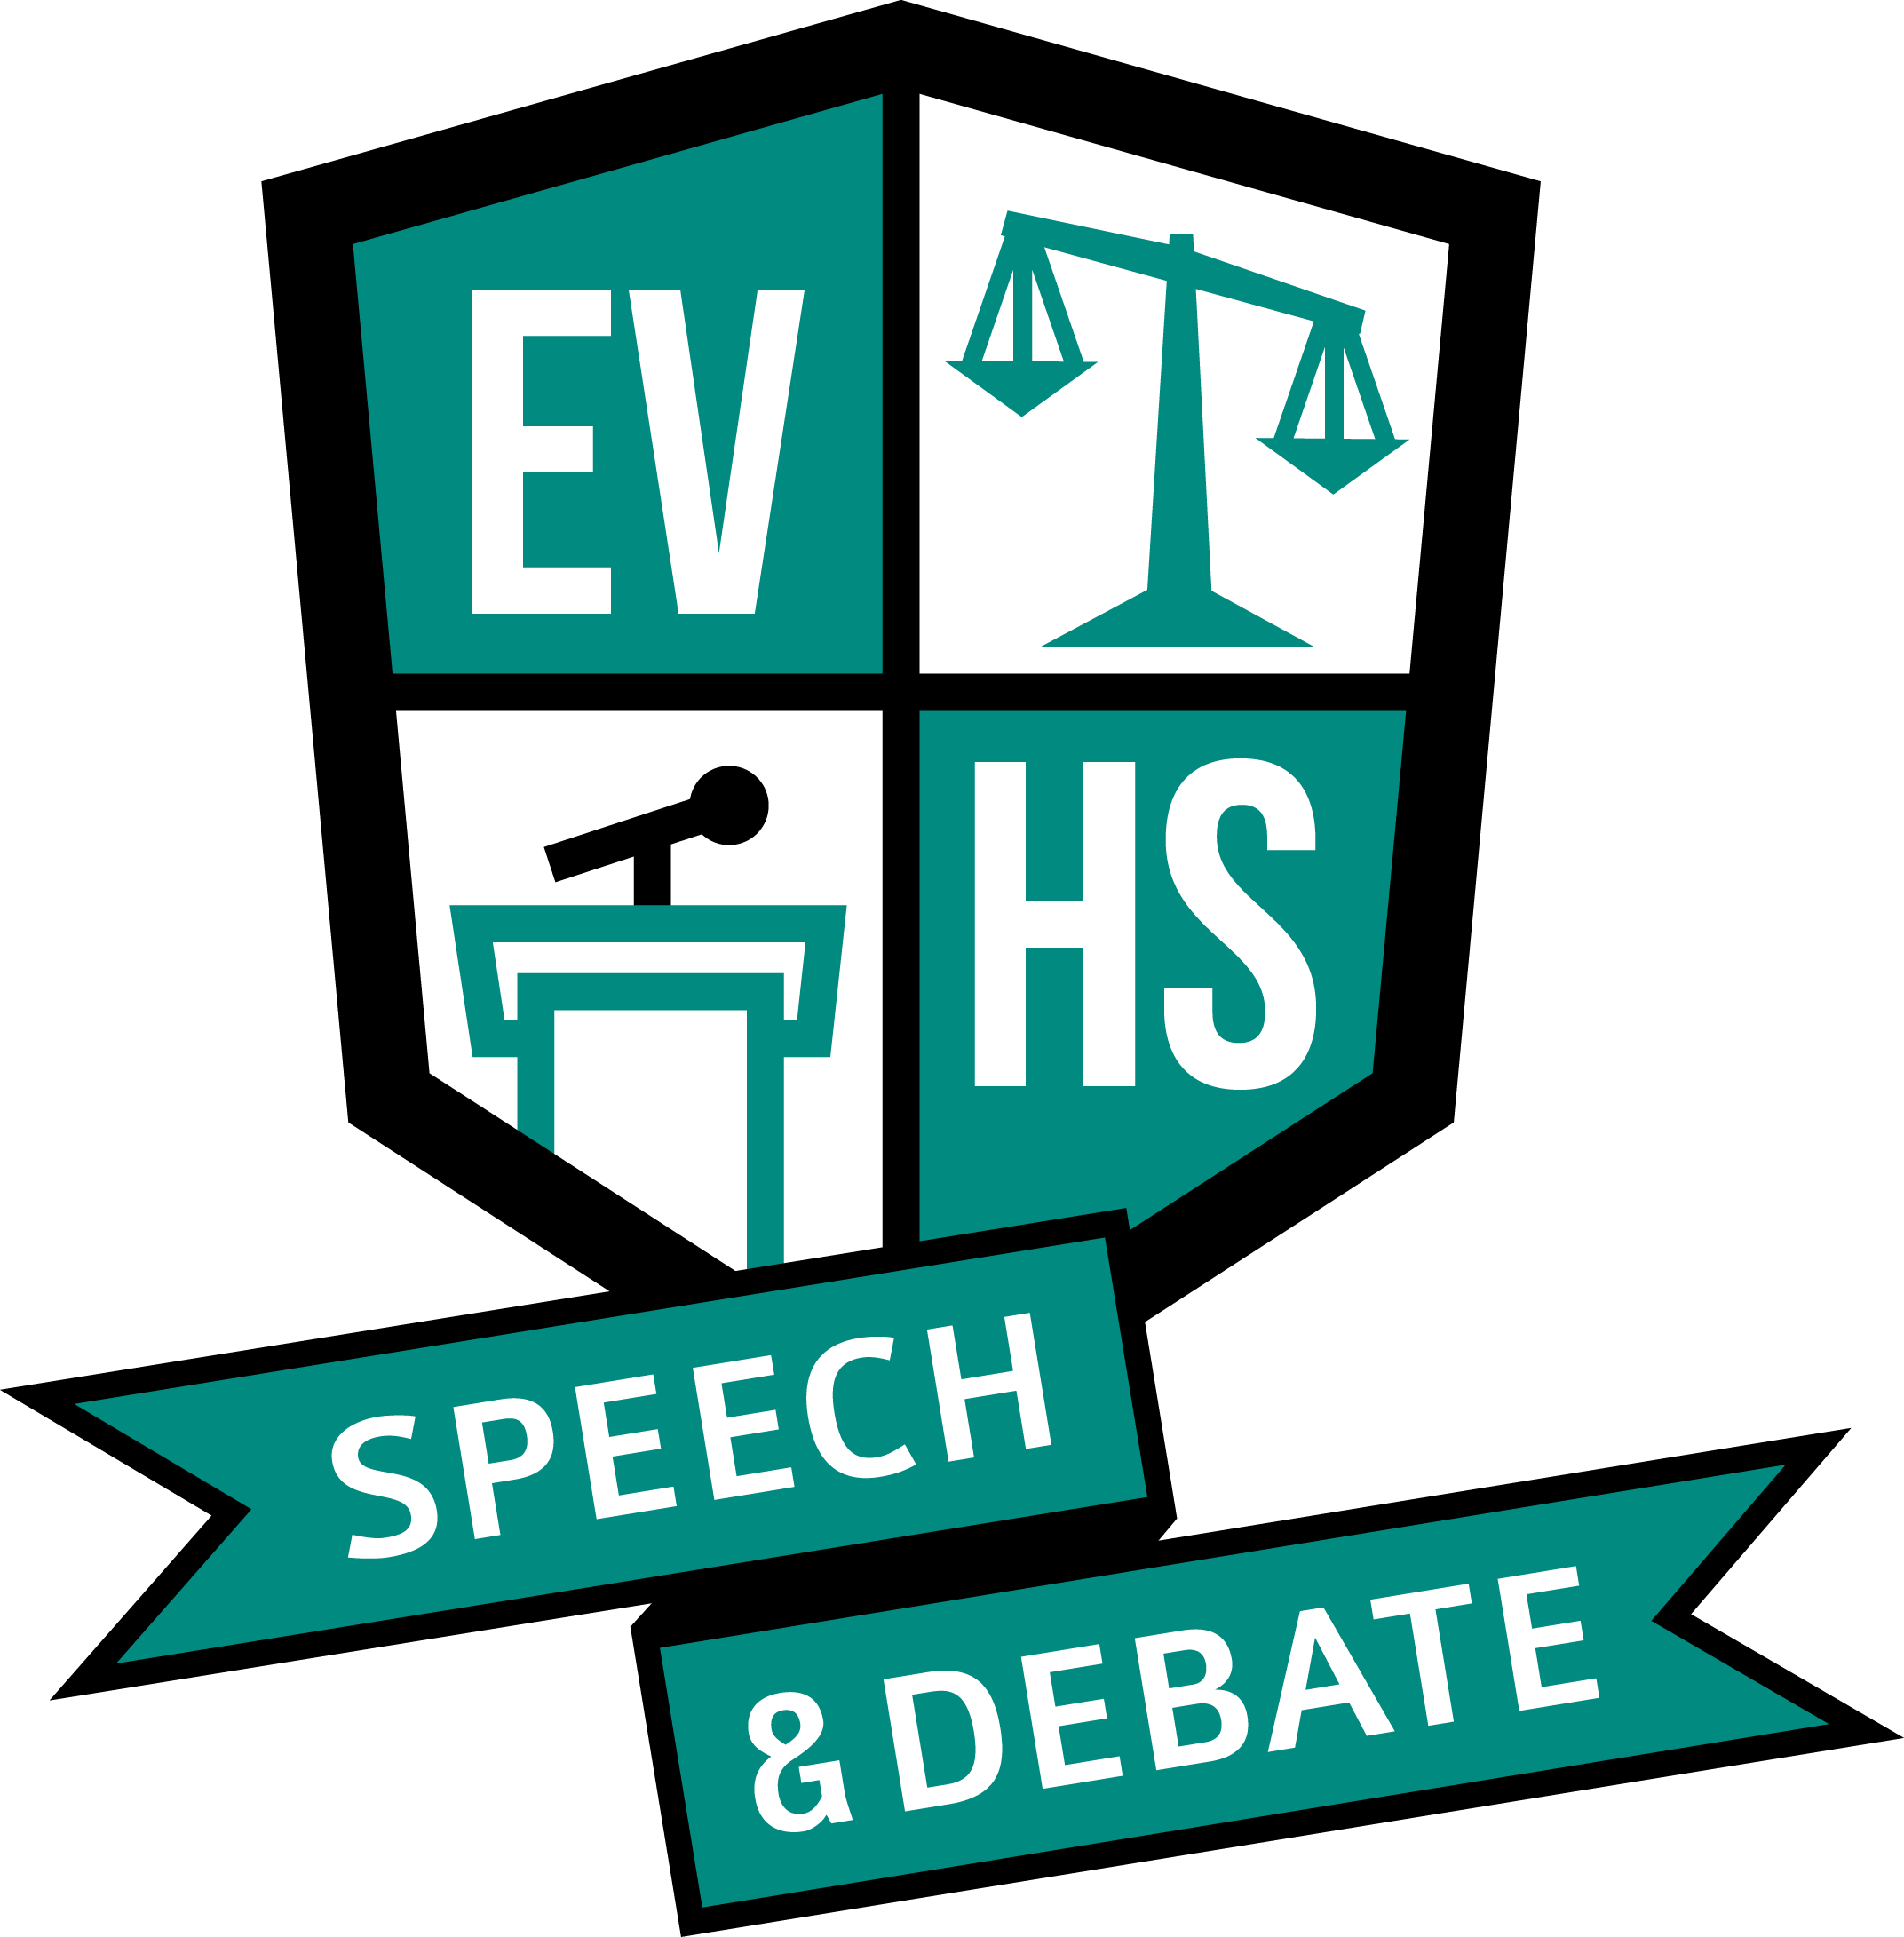 Competition clipart classroom debate. Image result for logos